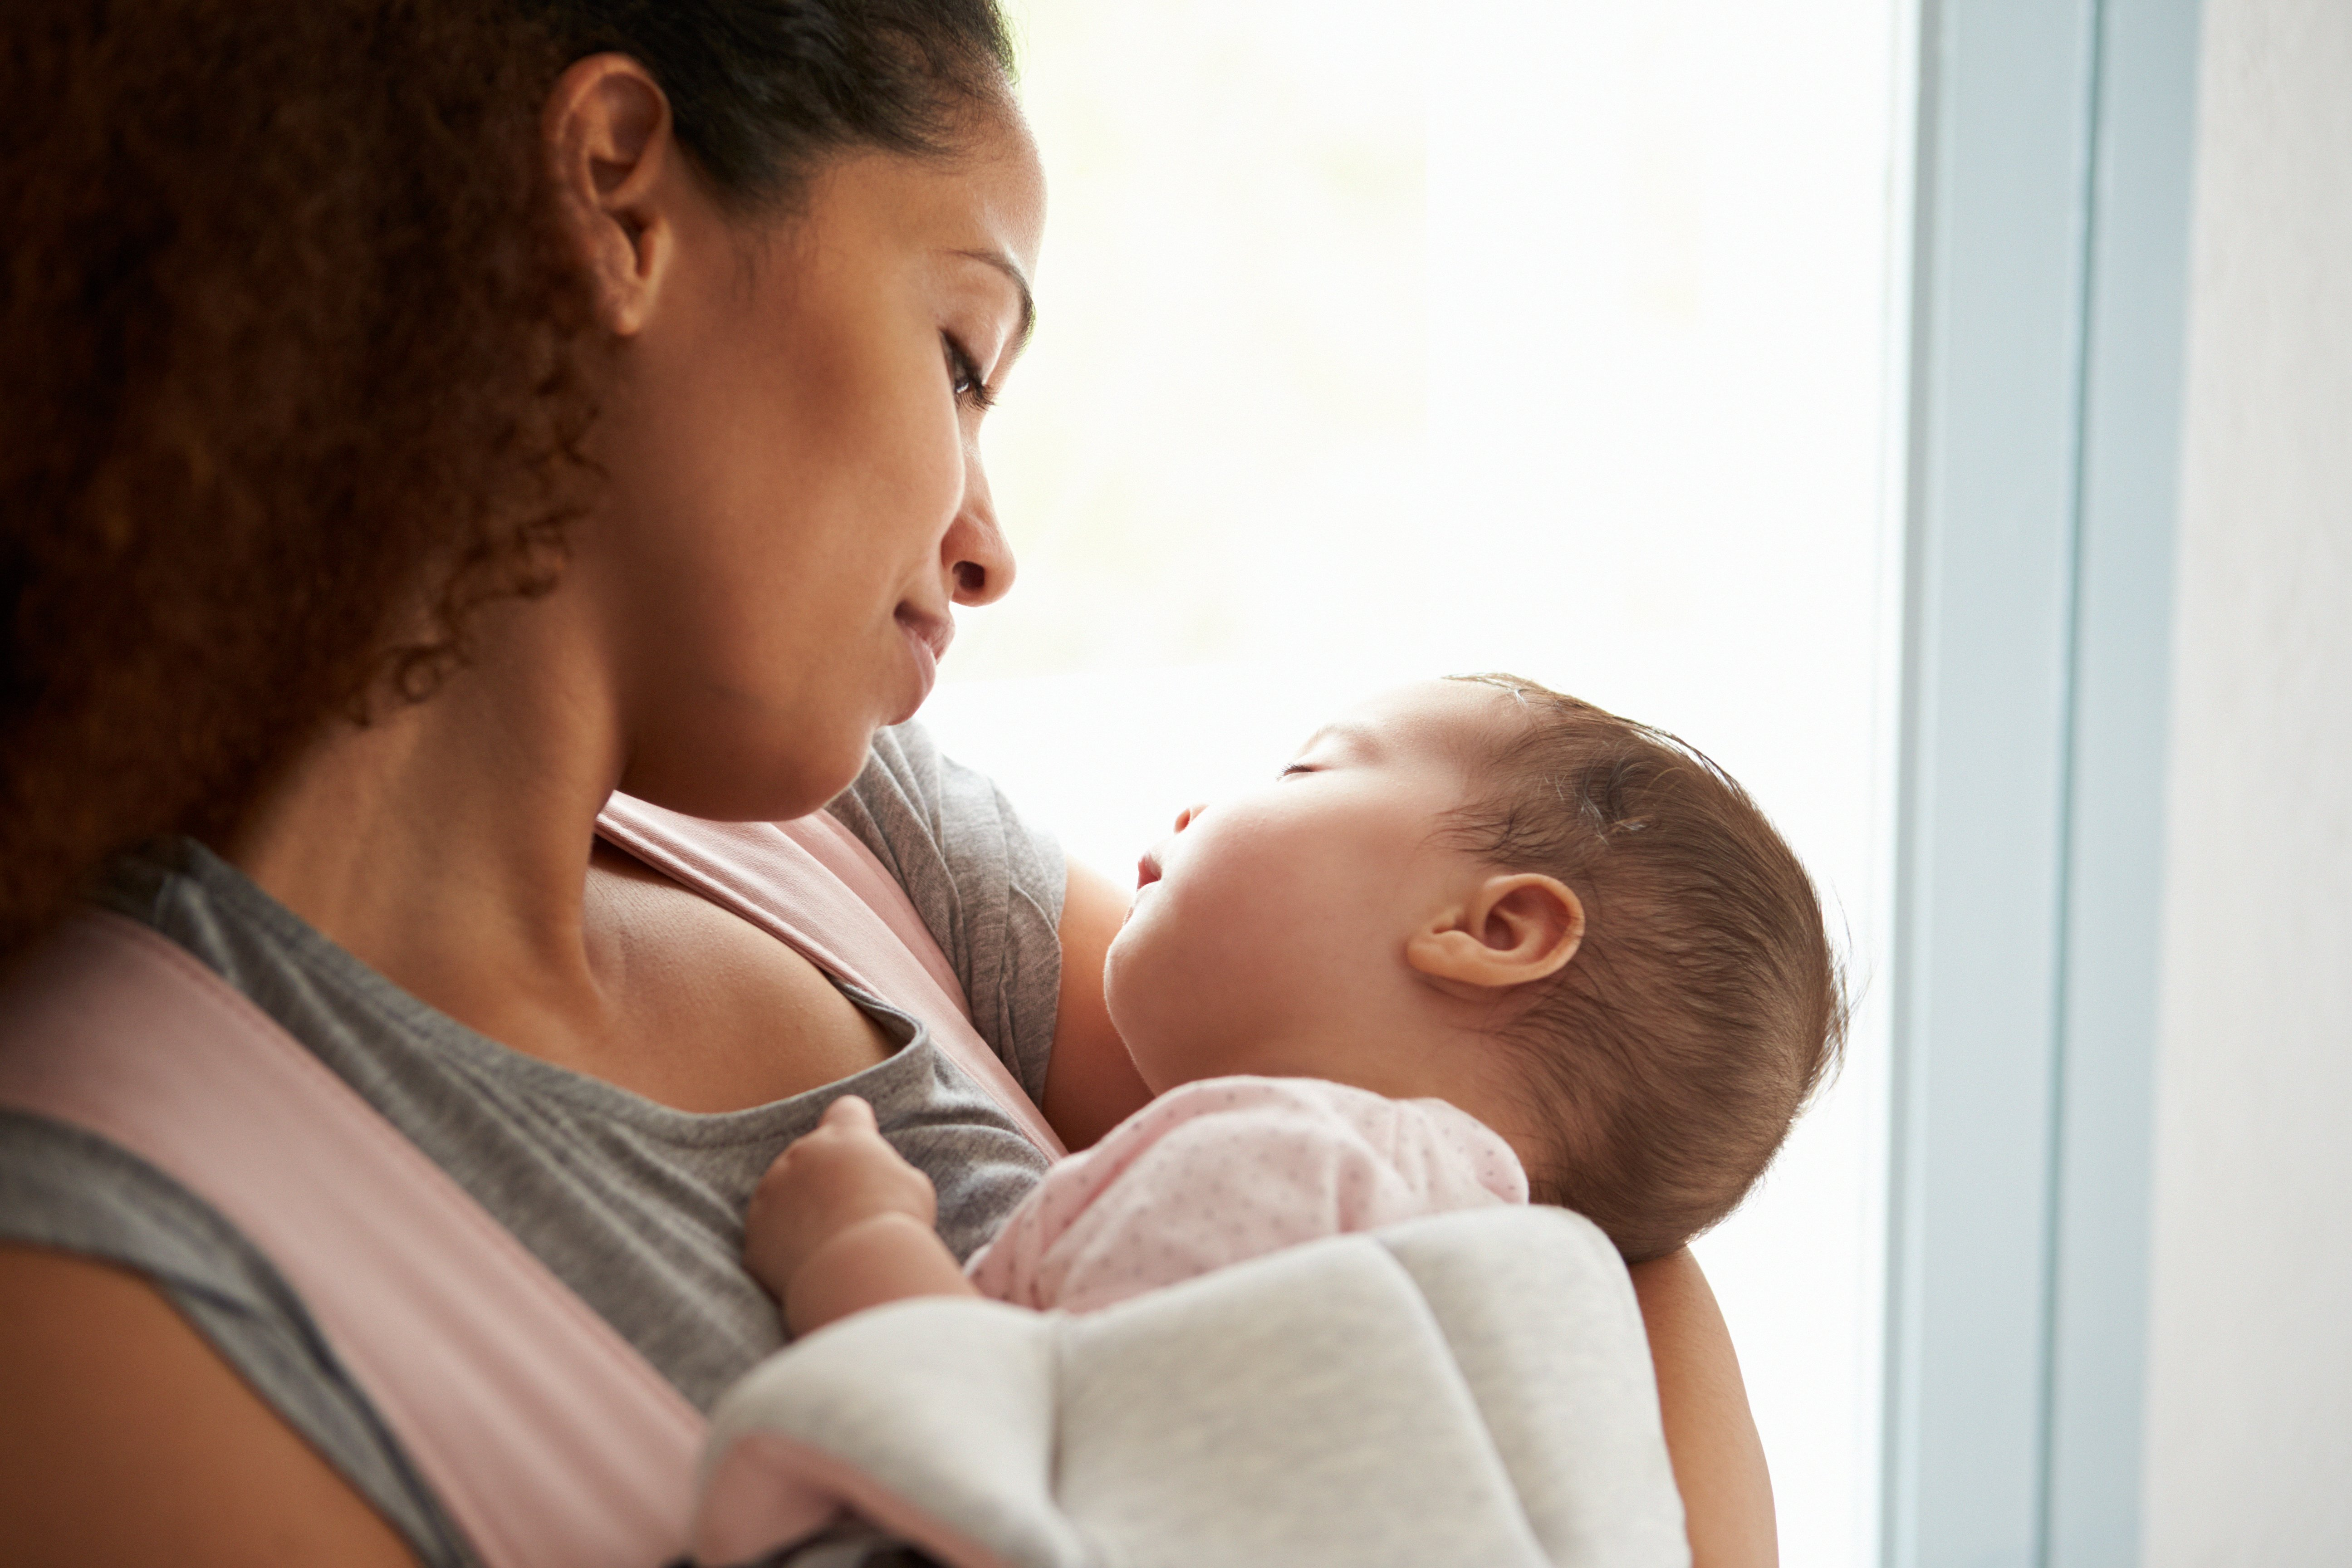 A woman holds a baby to her chest | Photo: Shutterstock